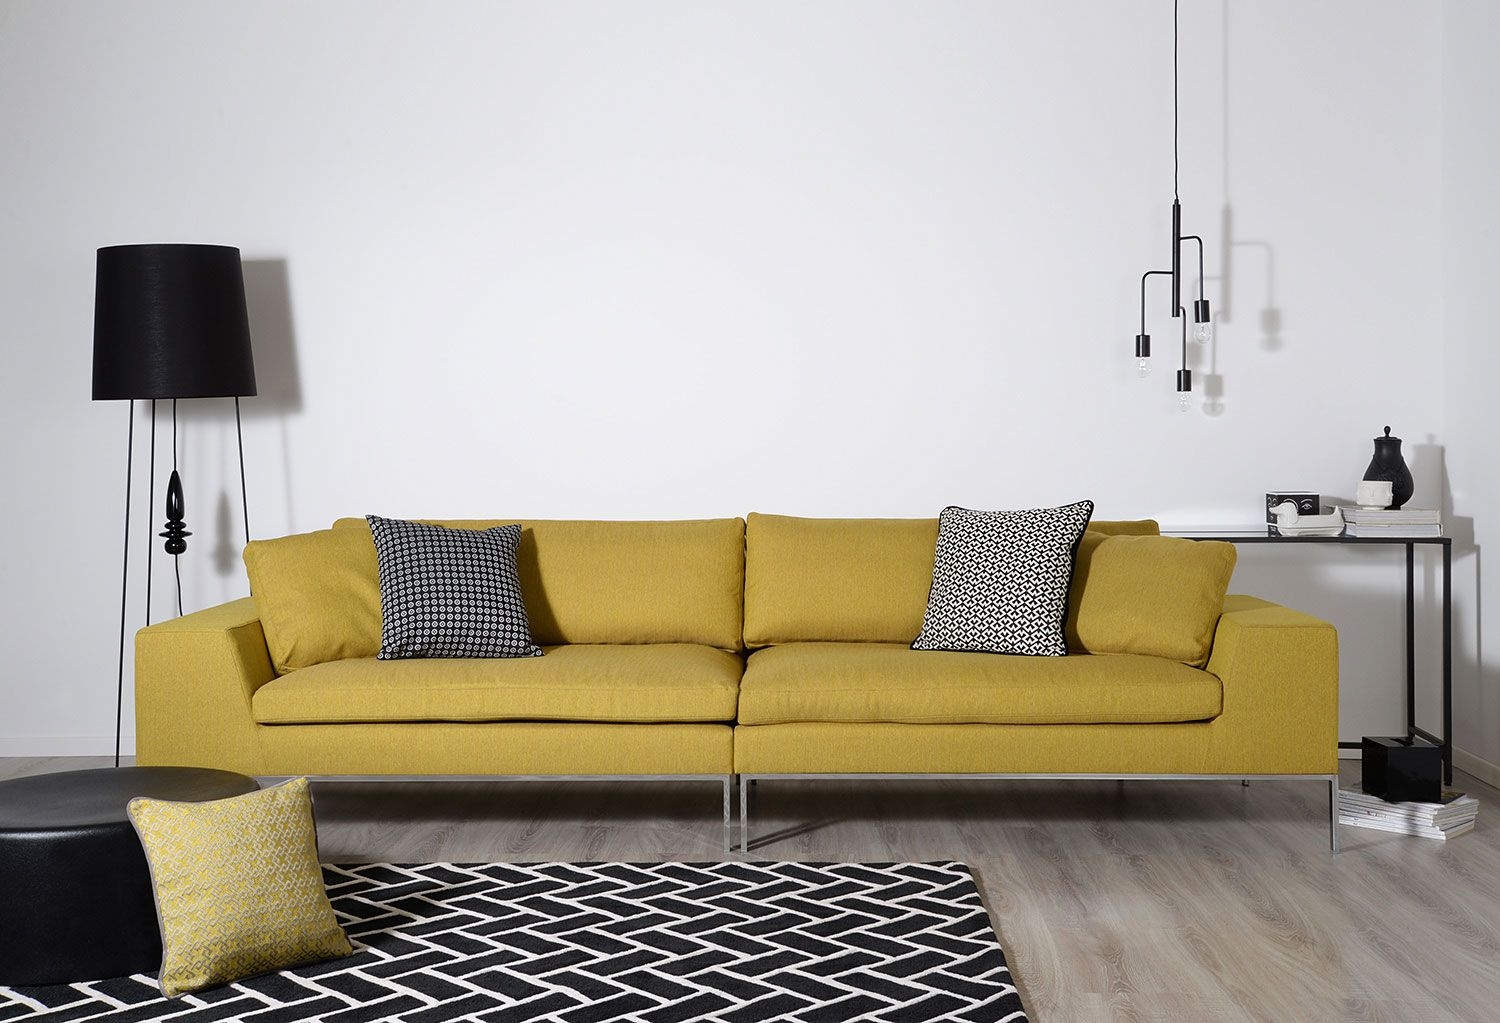 Schrankbett & Sofa Nuovoliola Sofas Online Kaufen Excellent Real Leather Sofa Sofas